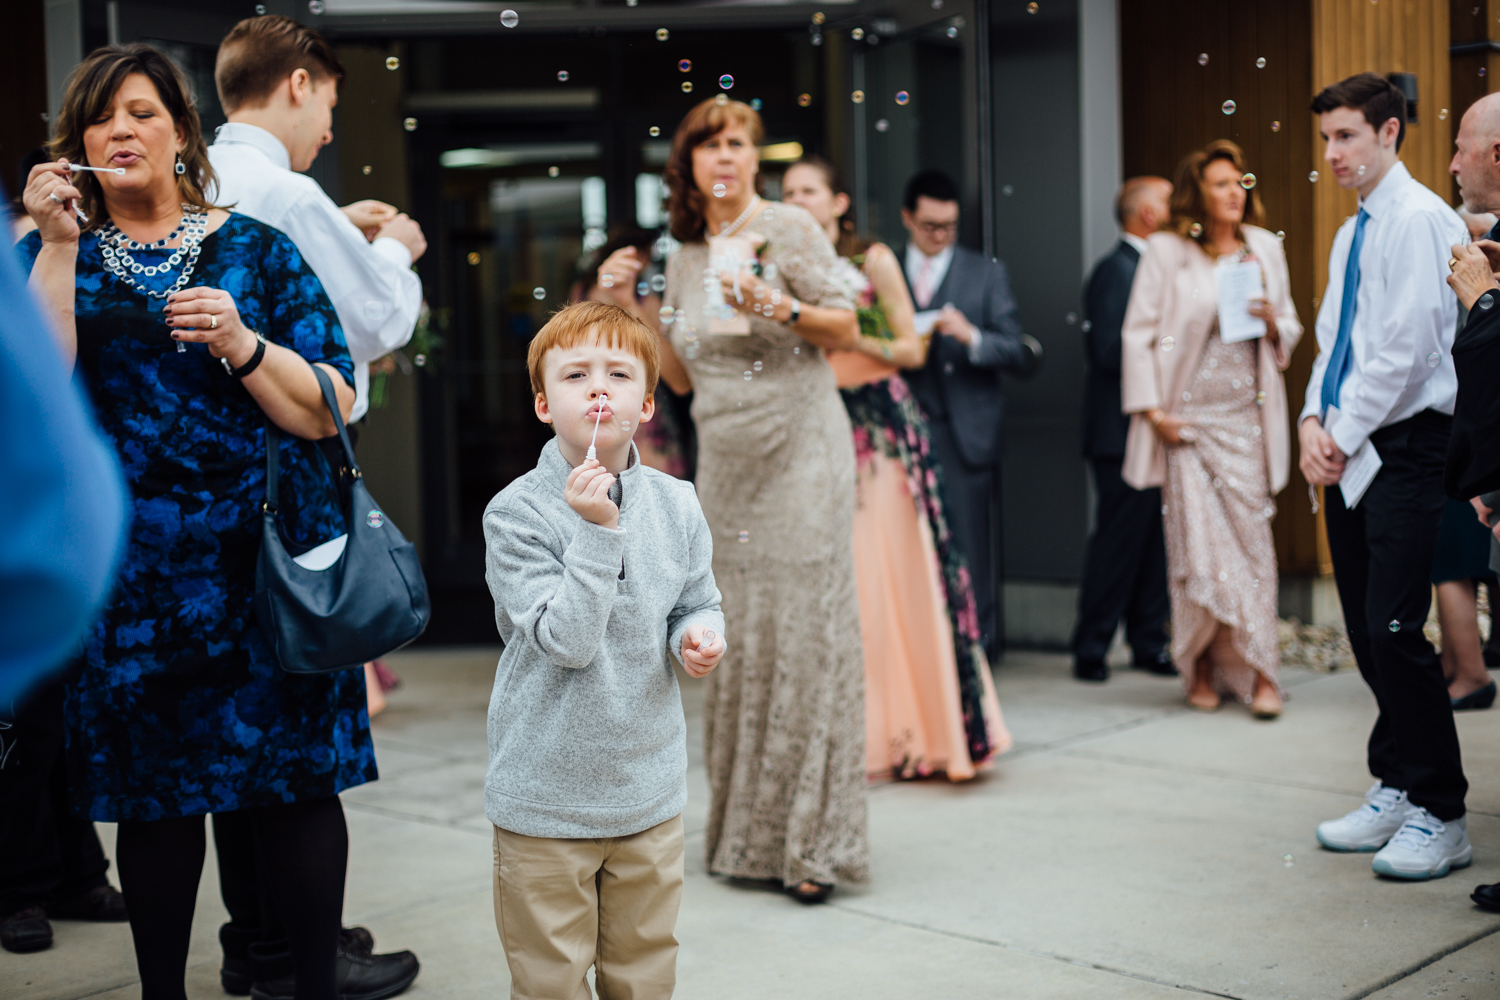 Fun, Intimate Spring Wedding by Corrie Mick Photography-50.jpg